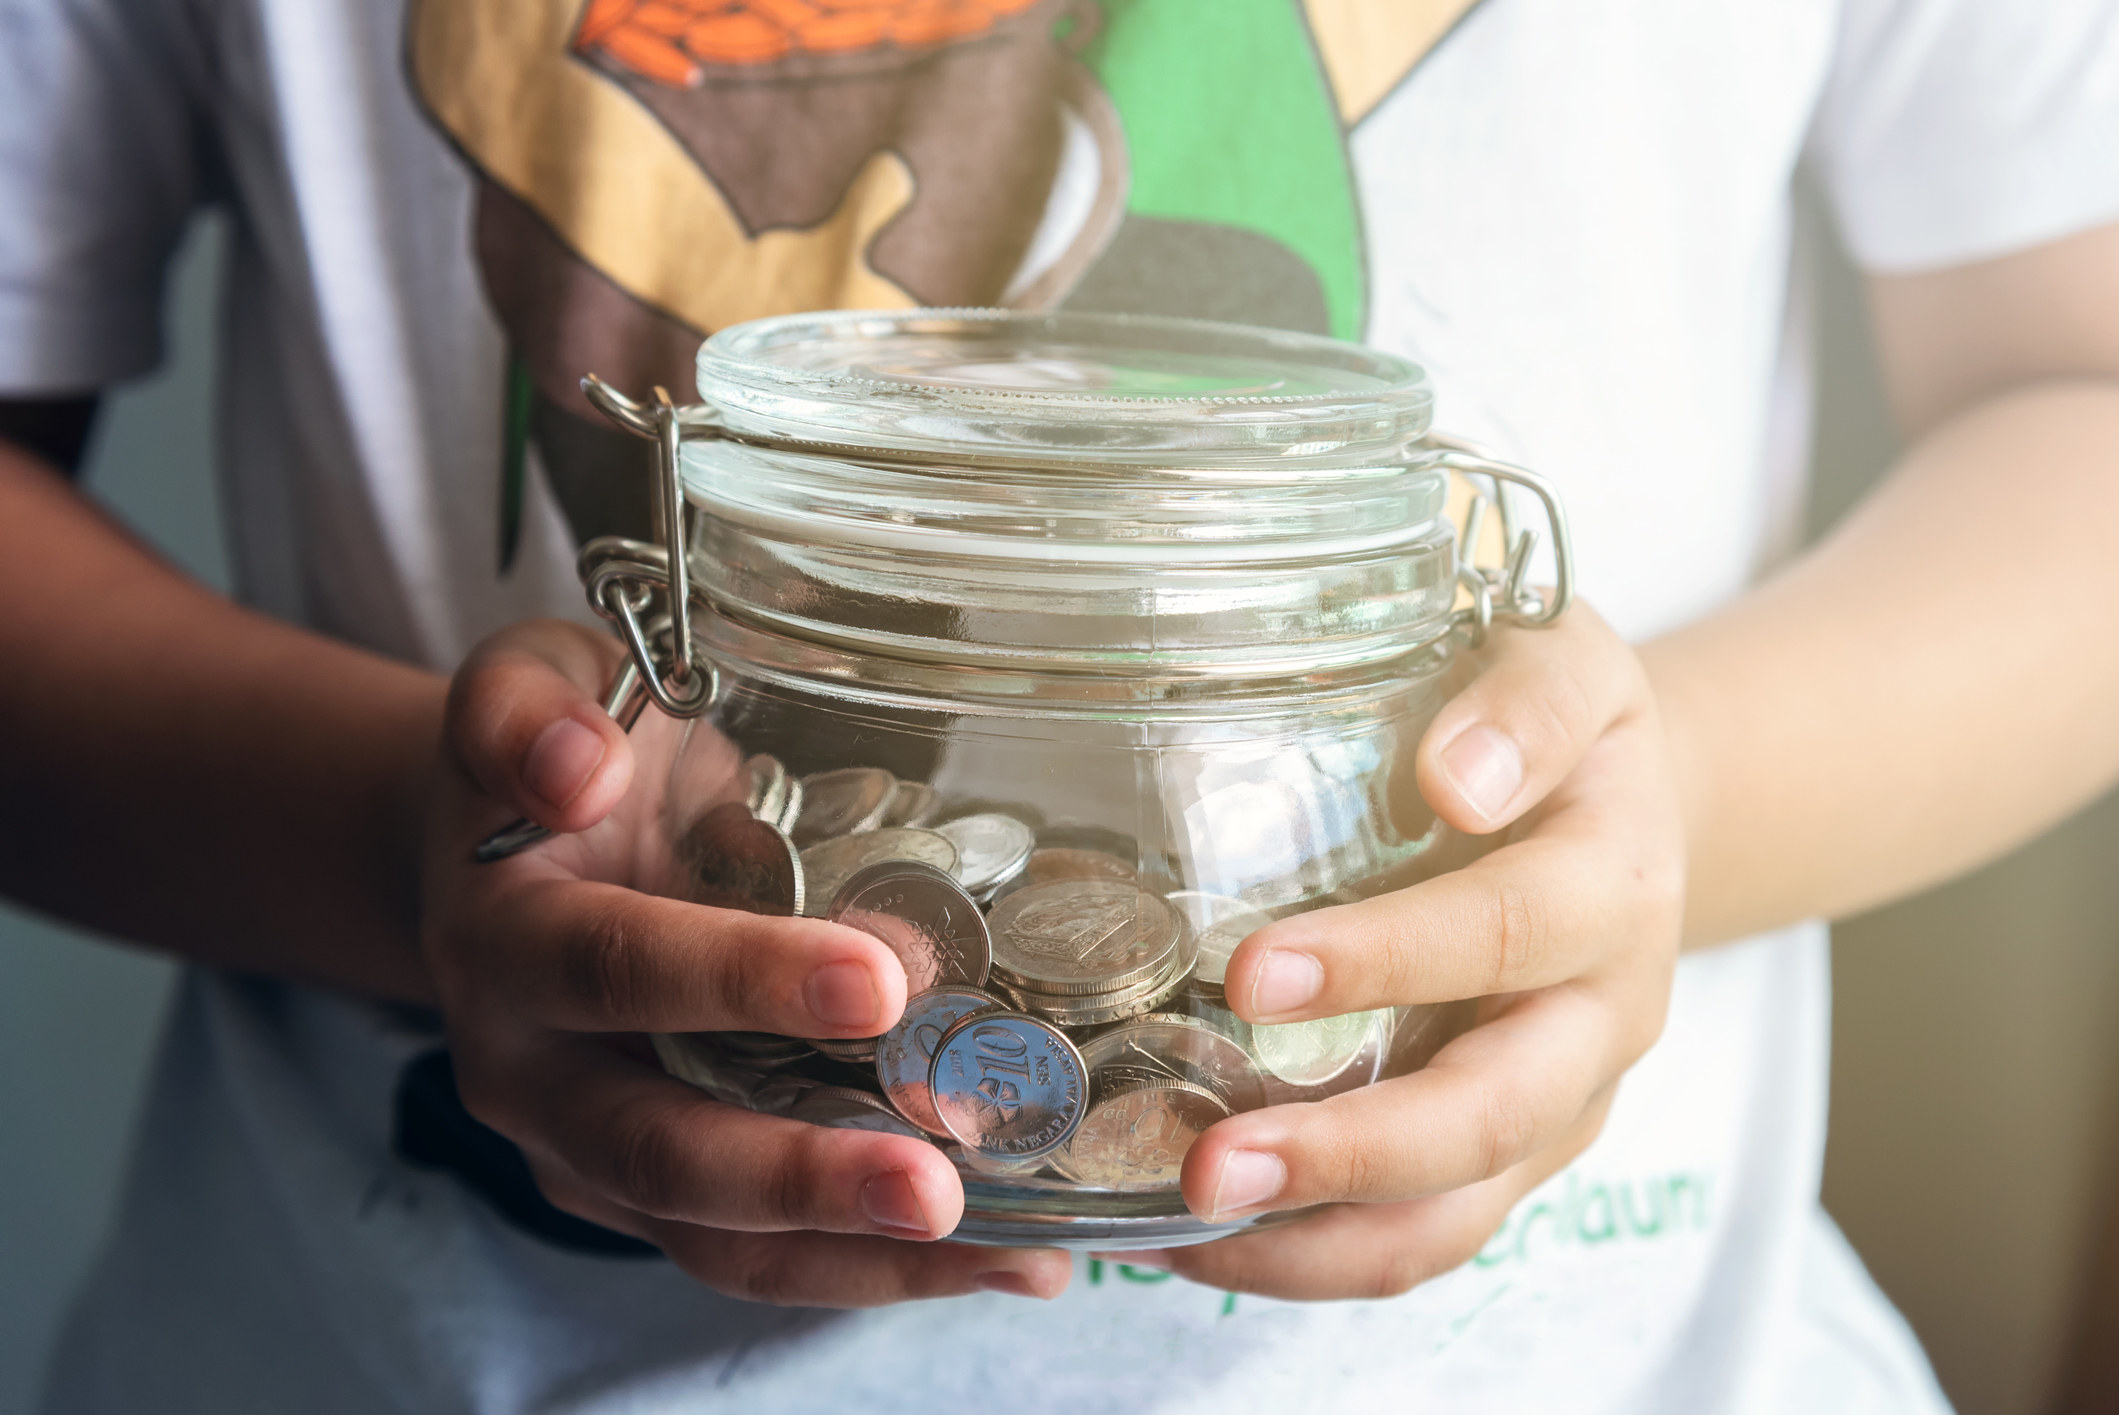 A kid holds a jar of coins